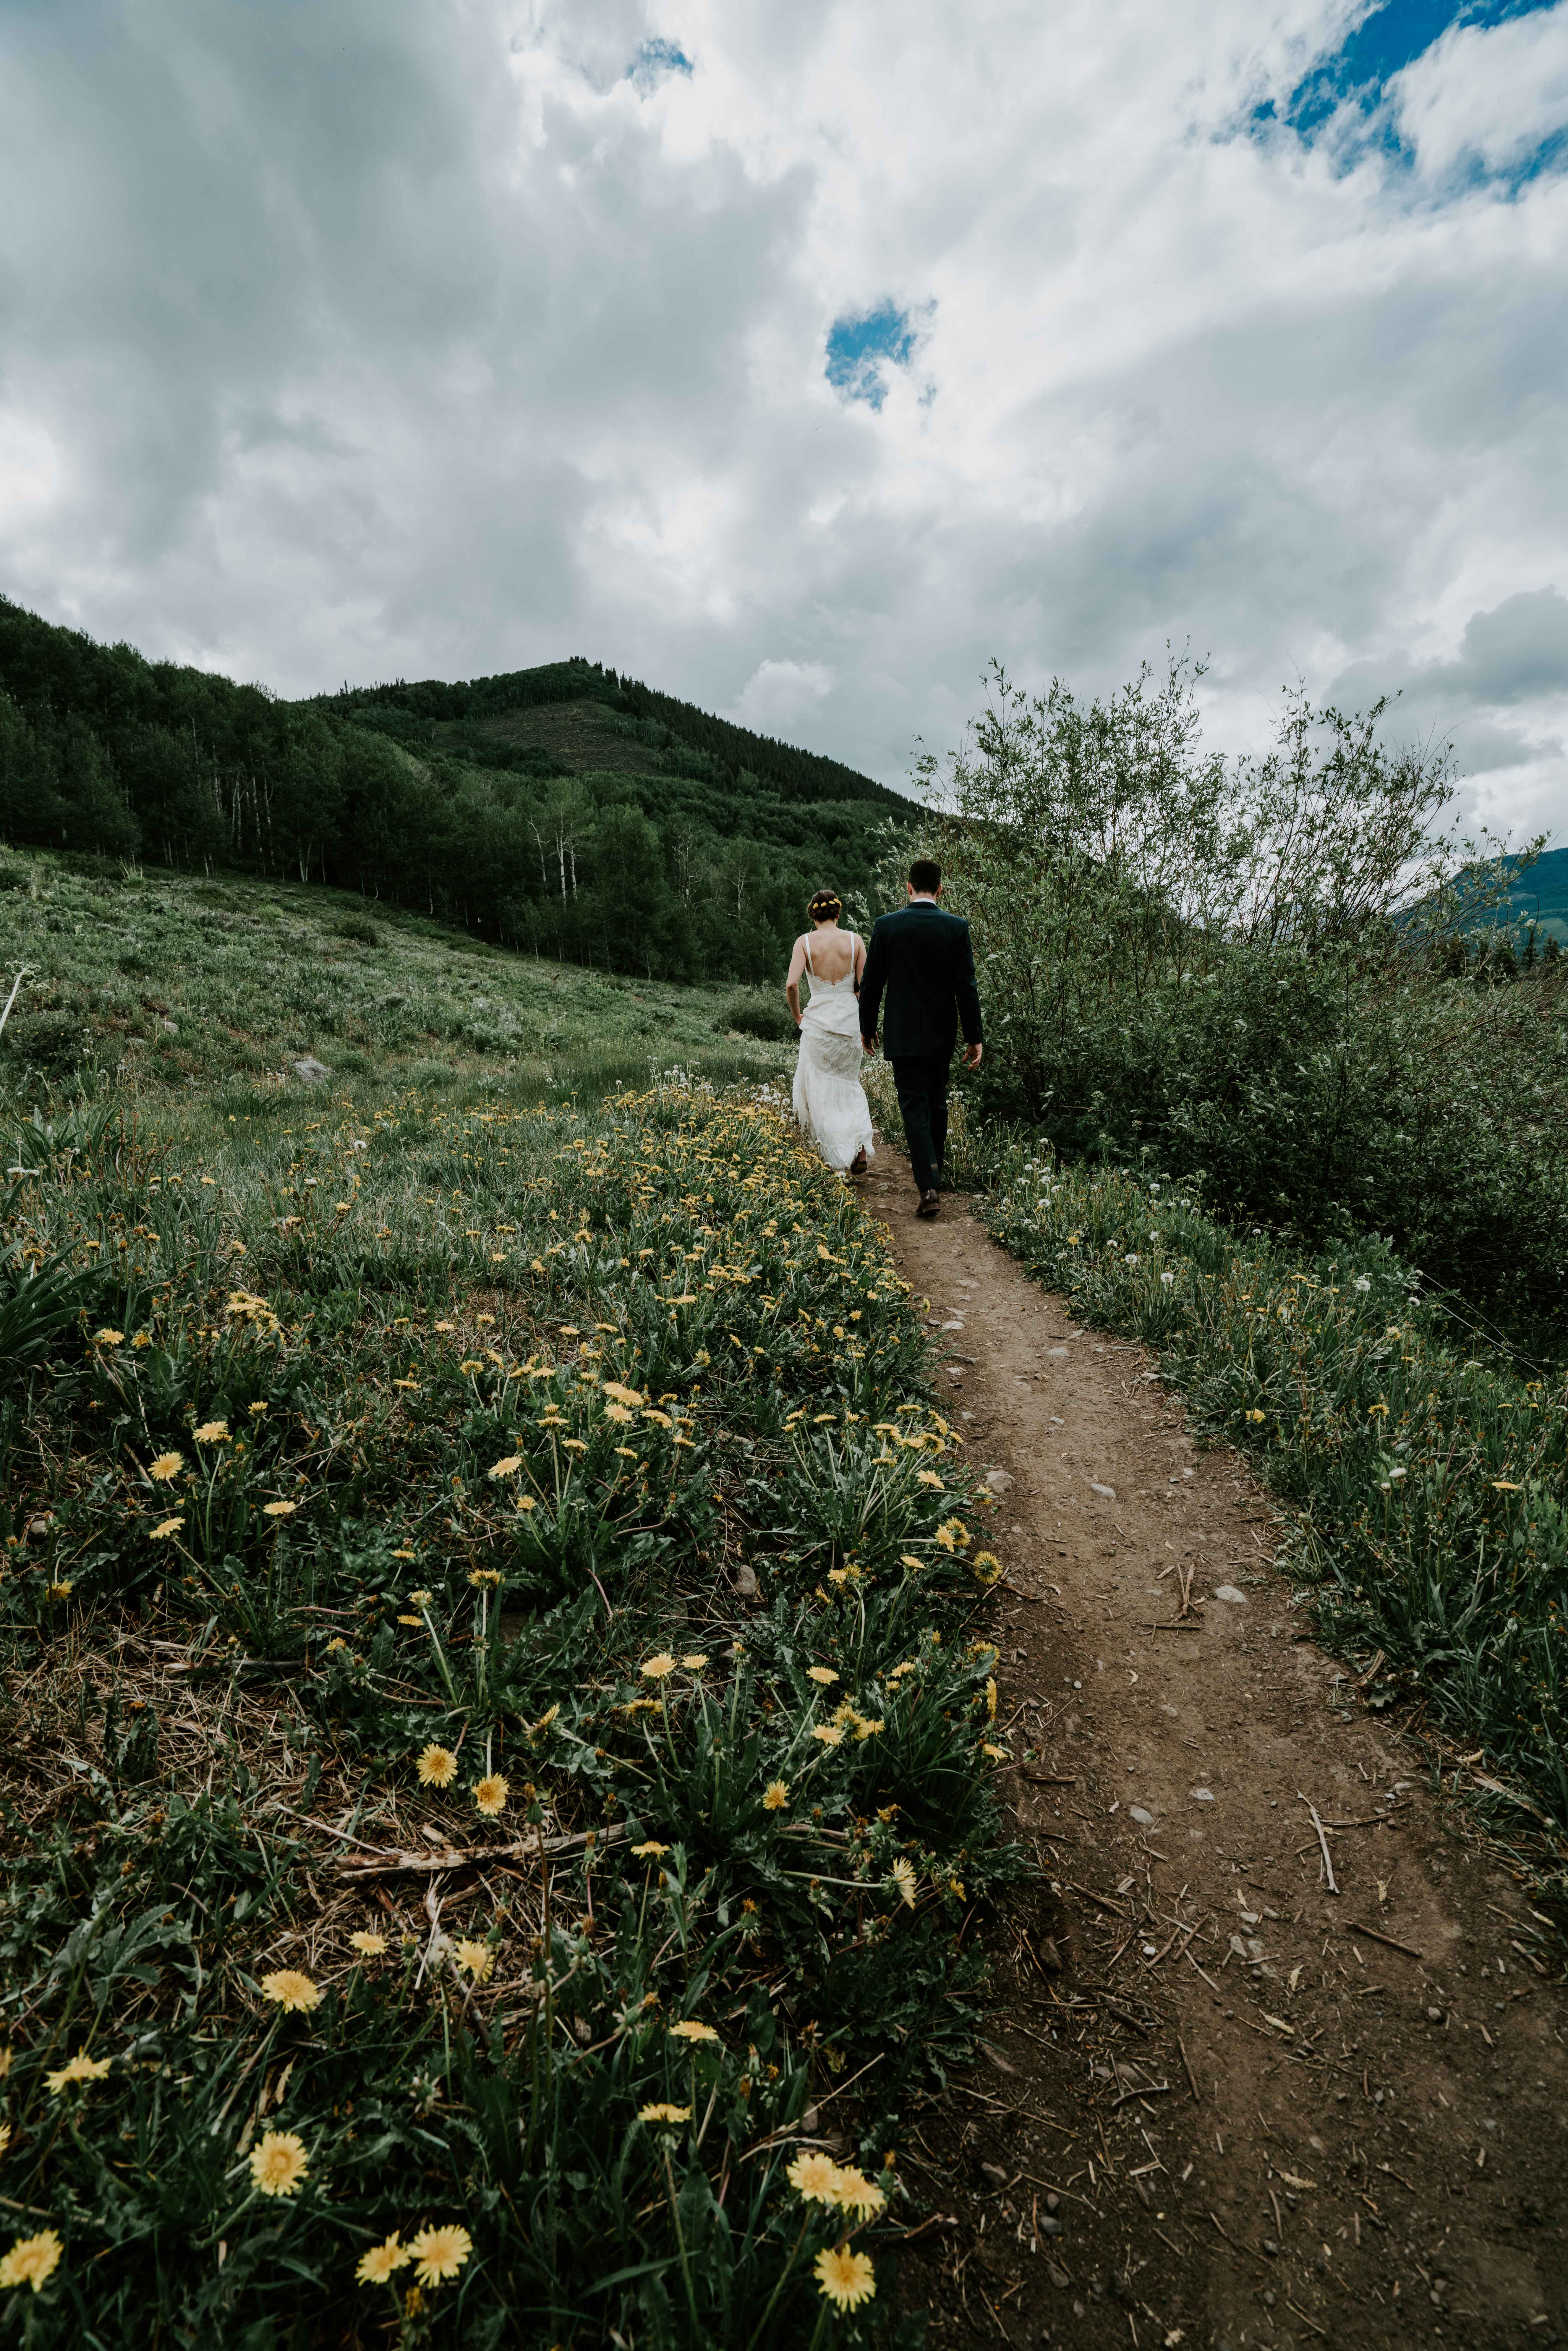 Laura_Alexe_Wedding_Crested_Butte_MegONeillPhotography__180616_90